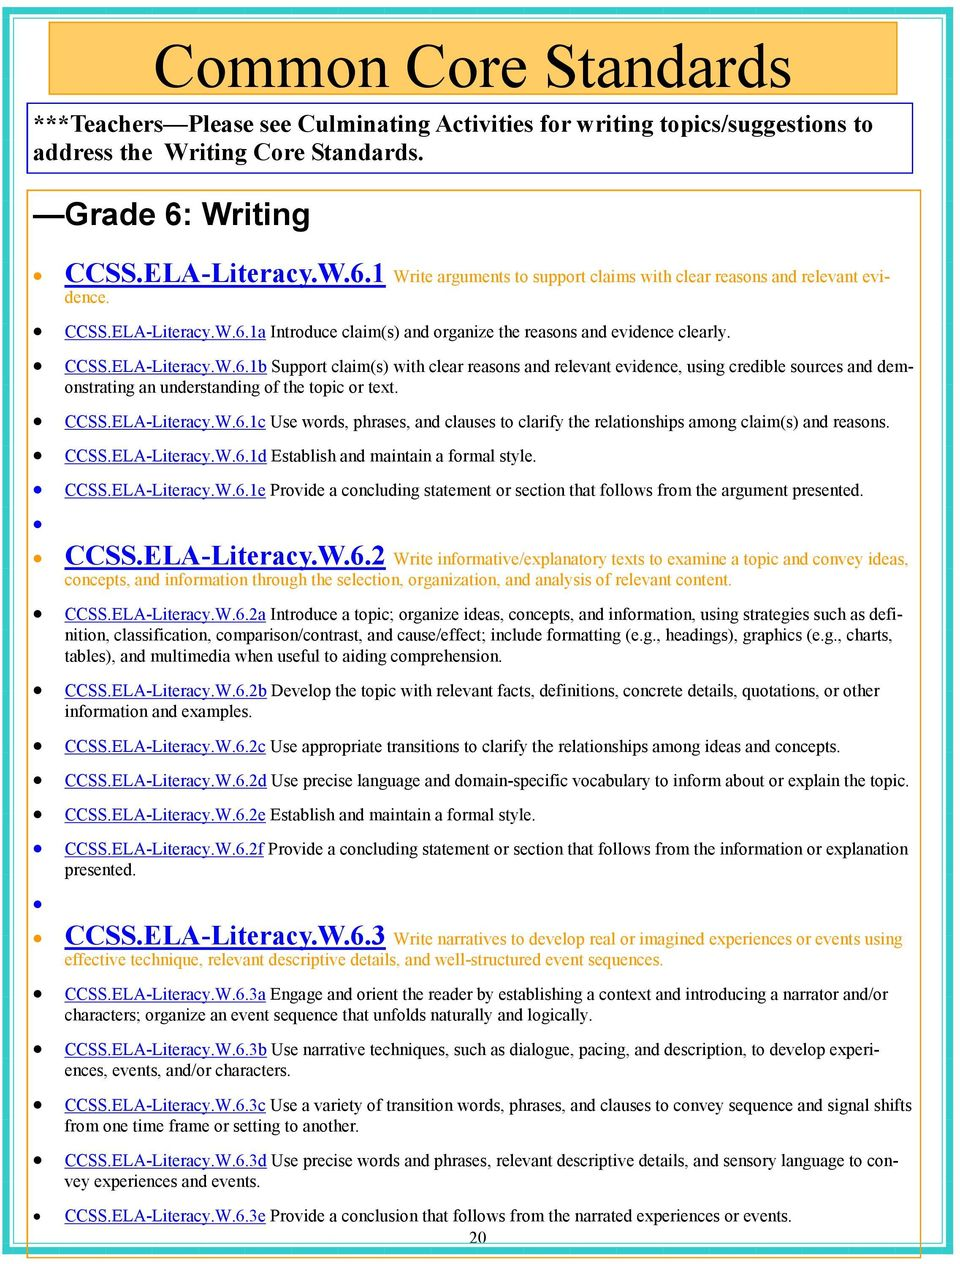 CCSS.ELA-Literacy.W.6.1b Support claim(s) with clear reasons and relevant evidence, using credible sources and demonstrating an understanding of the topic or text. CCSS.ELA-Literacy.W.6.1c Use words, phrases, and clauses to clarify the relationships among claim(s) and reasons.